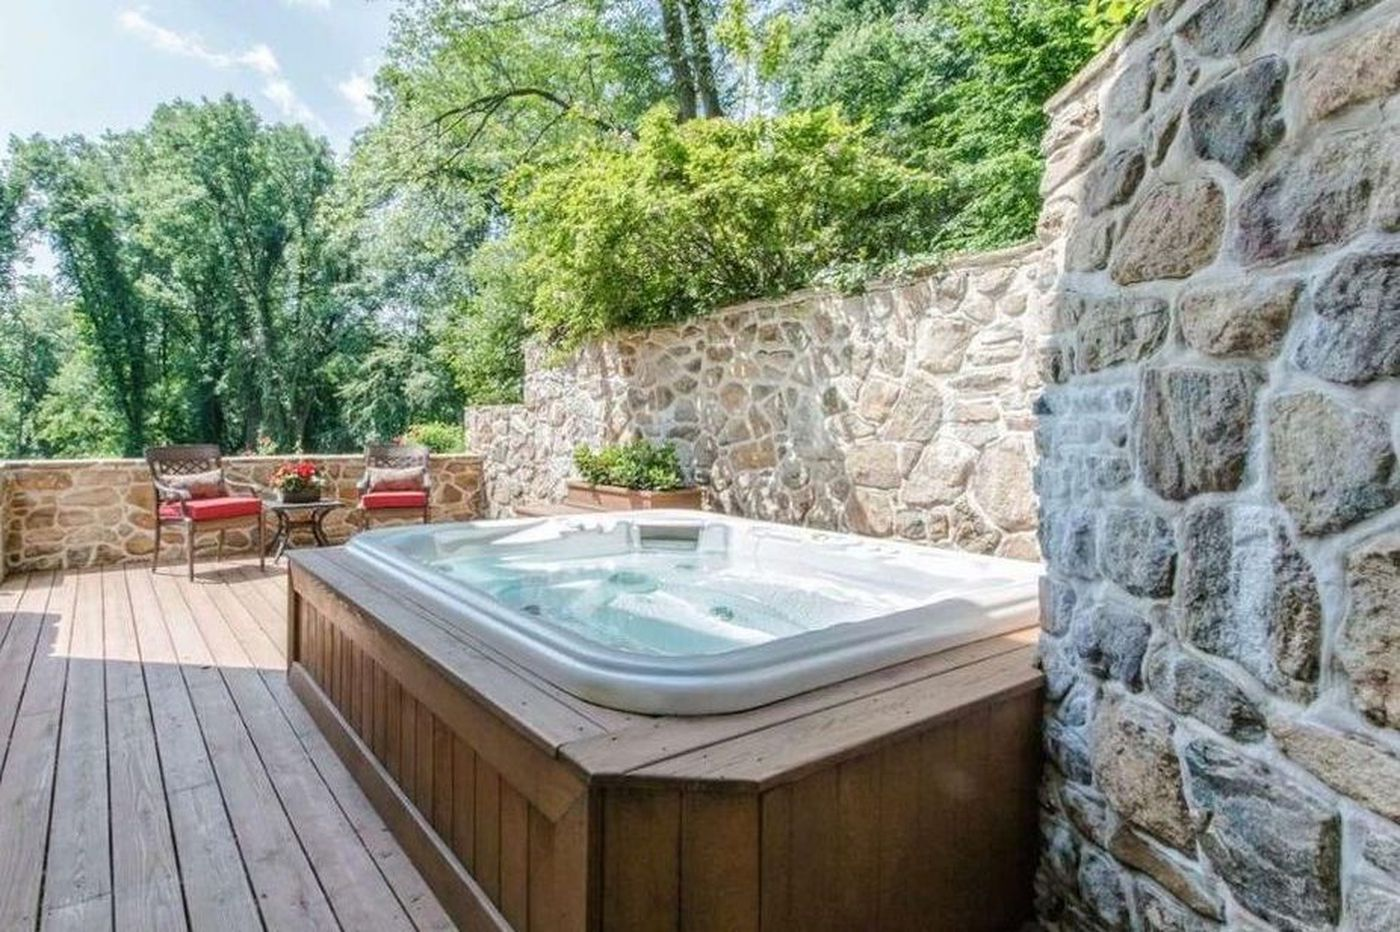 Included with these Philly suburban million-dollar homes: A hot tub